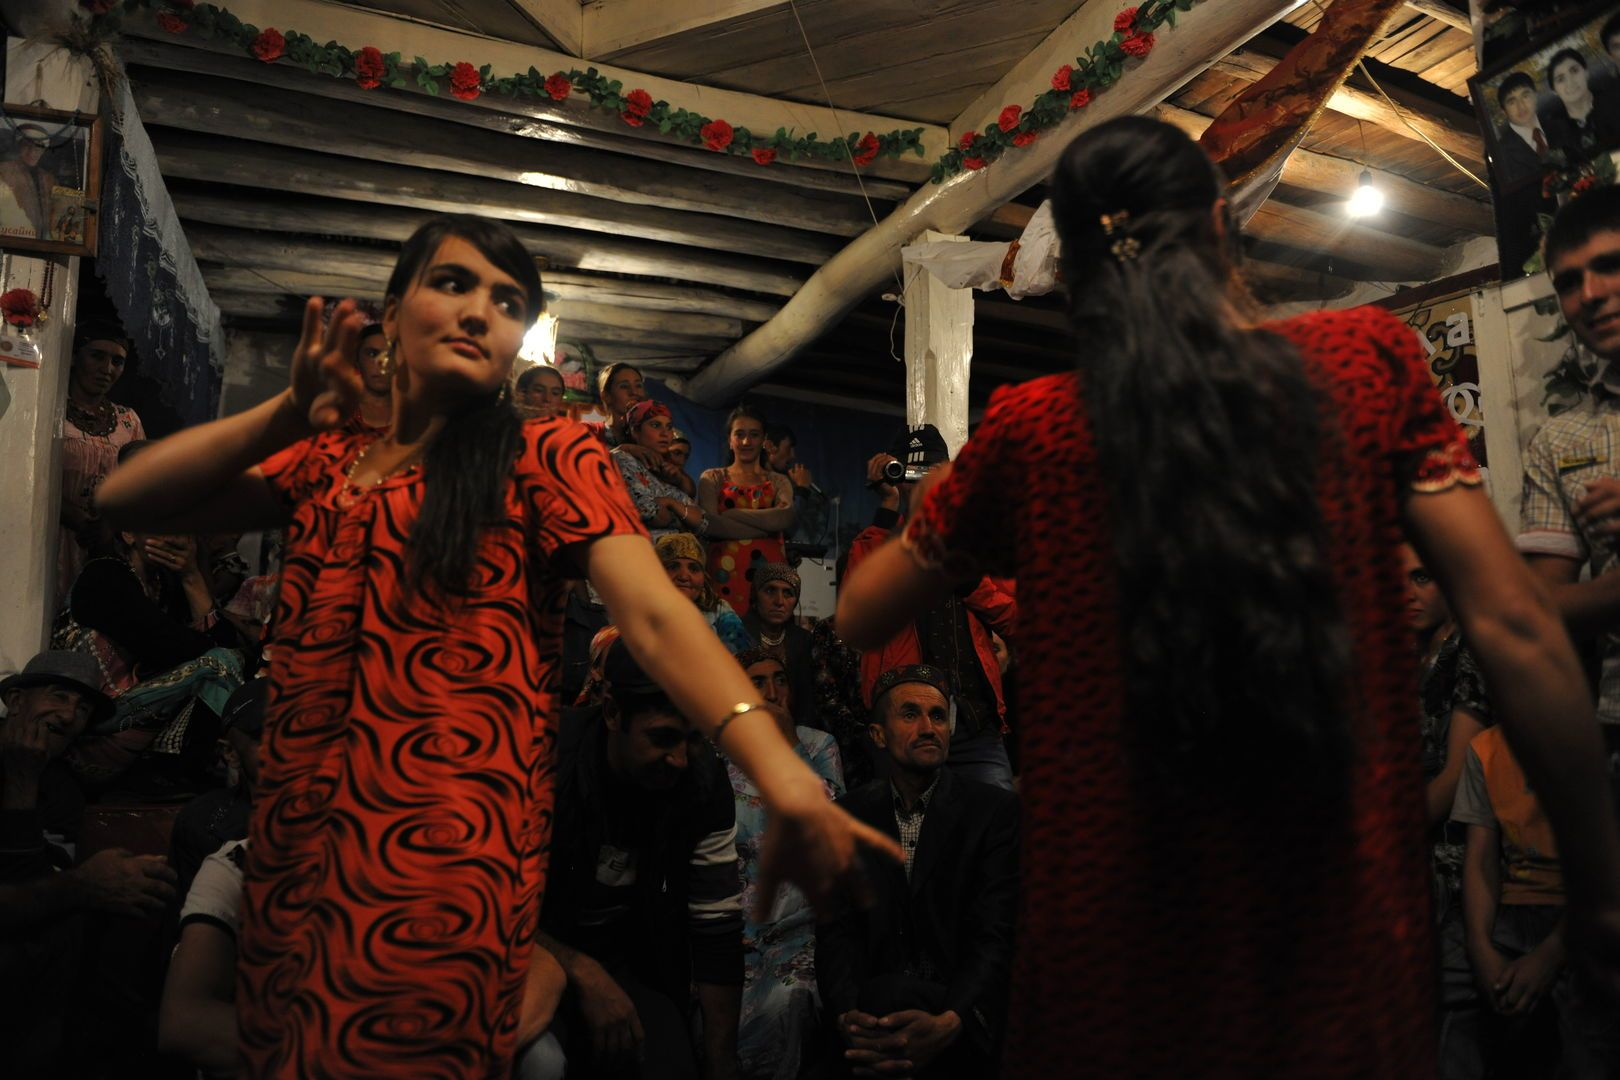 Central Asia dance, music